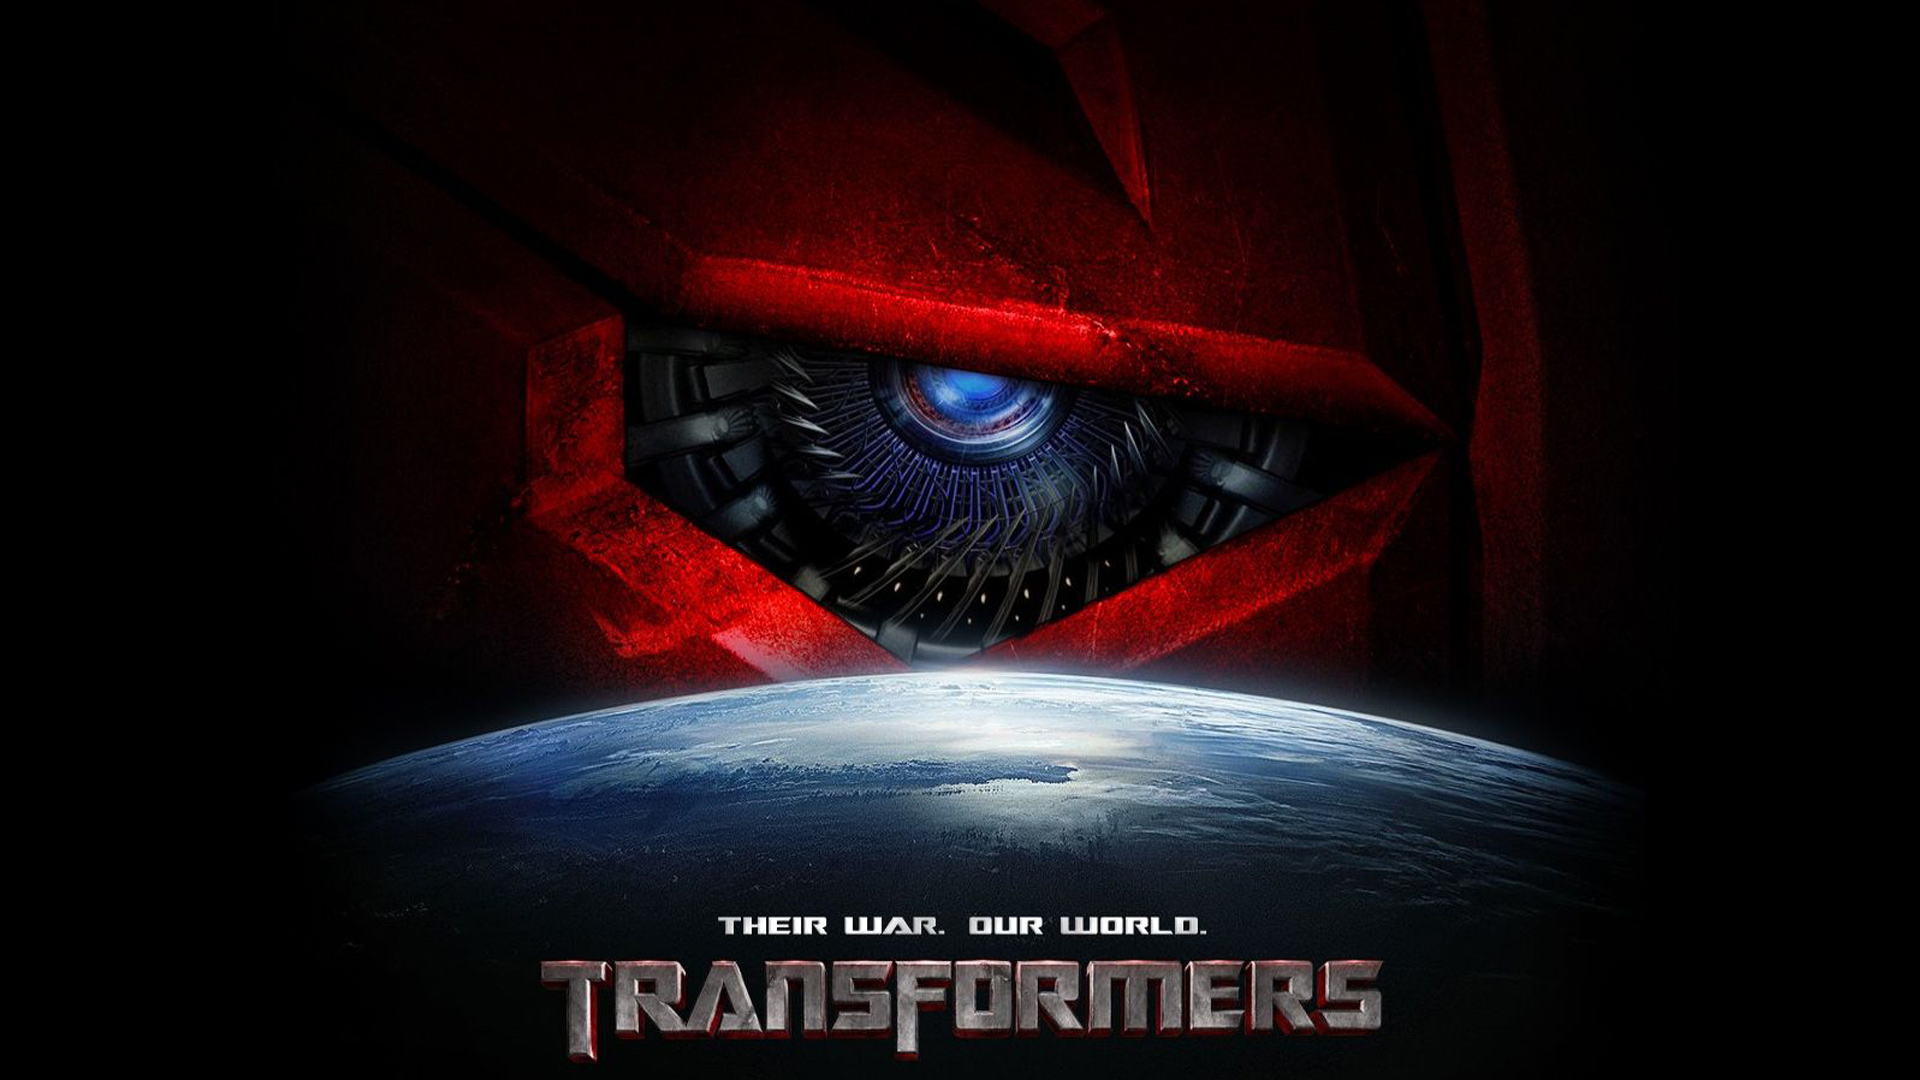 Transformers 3 Movie Wallpapers HD Wallpapers 1920x1080